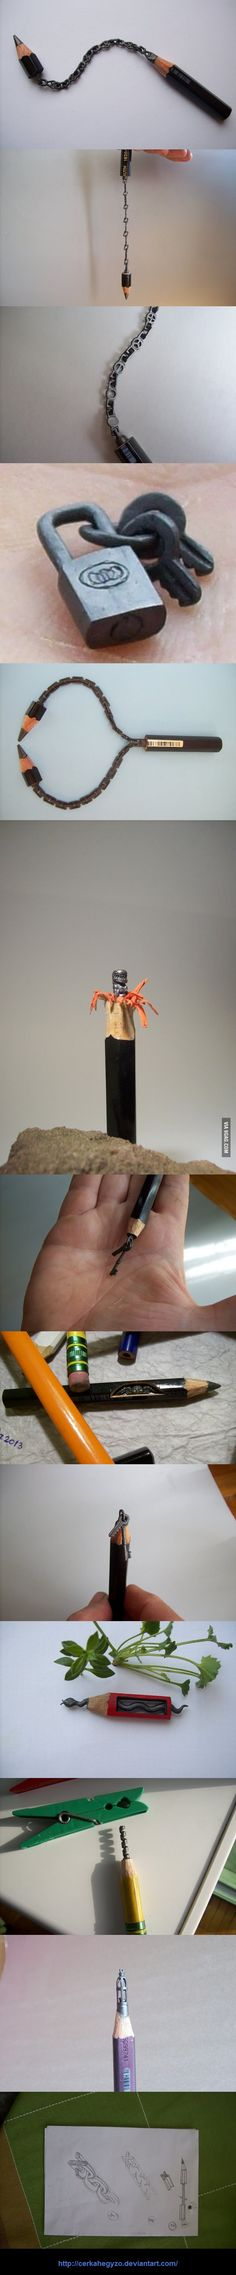 Amazingly intricate pencil lead carving's by Cerkahegyzo